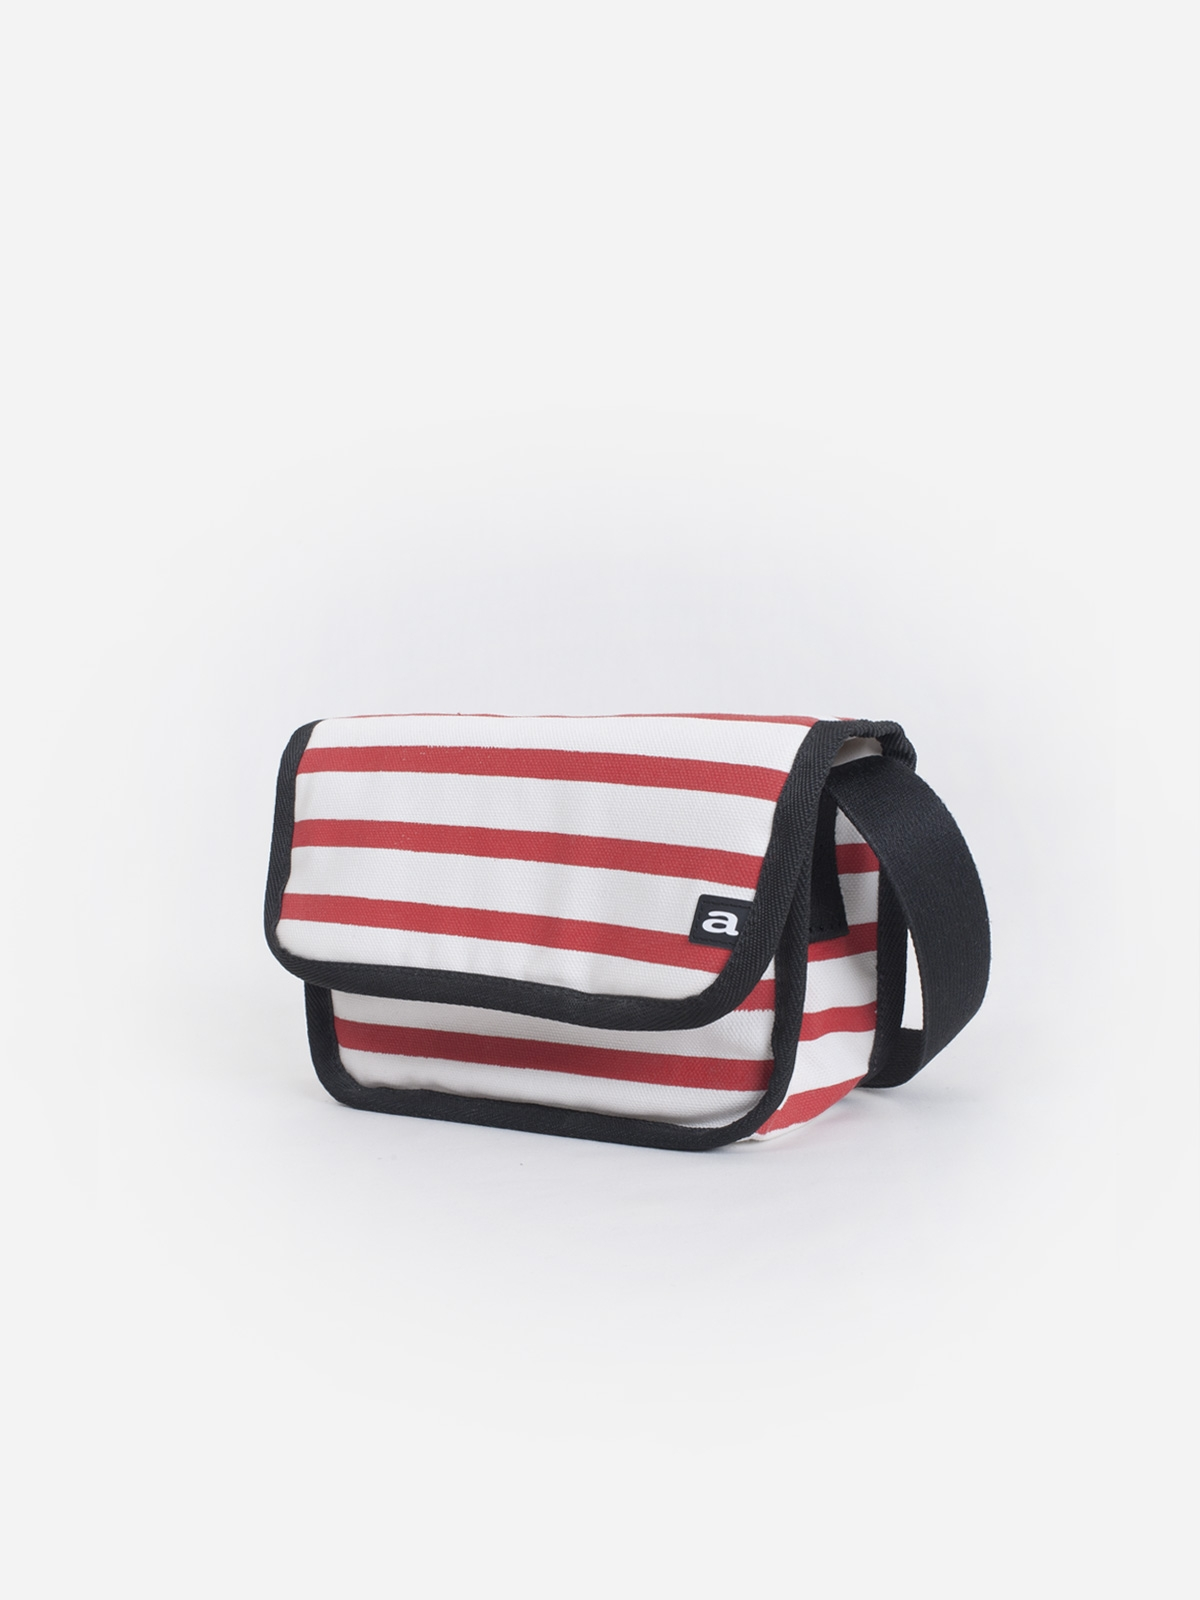 airbag craftworks maritime red